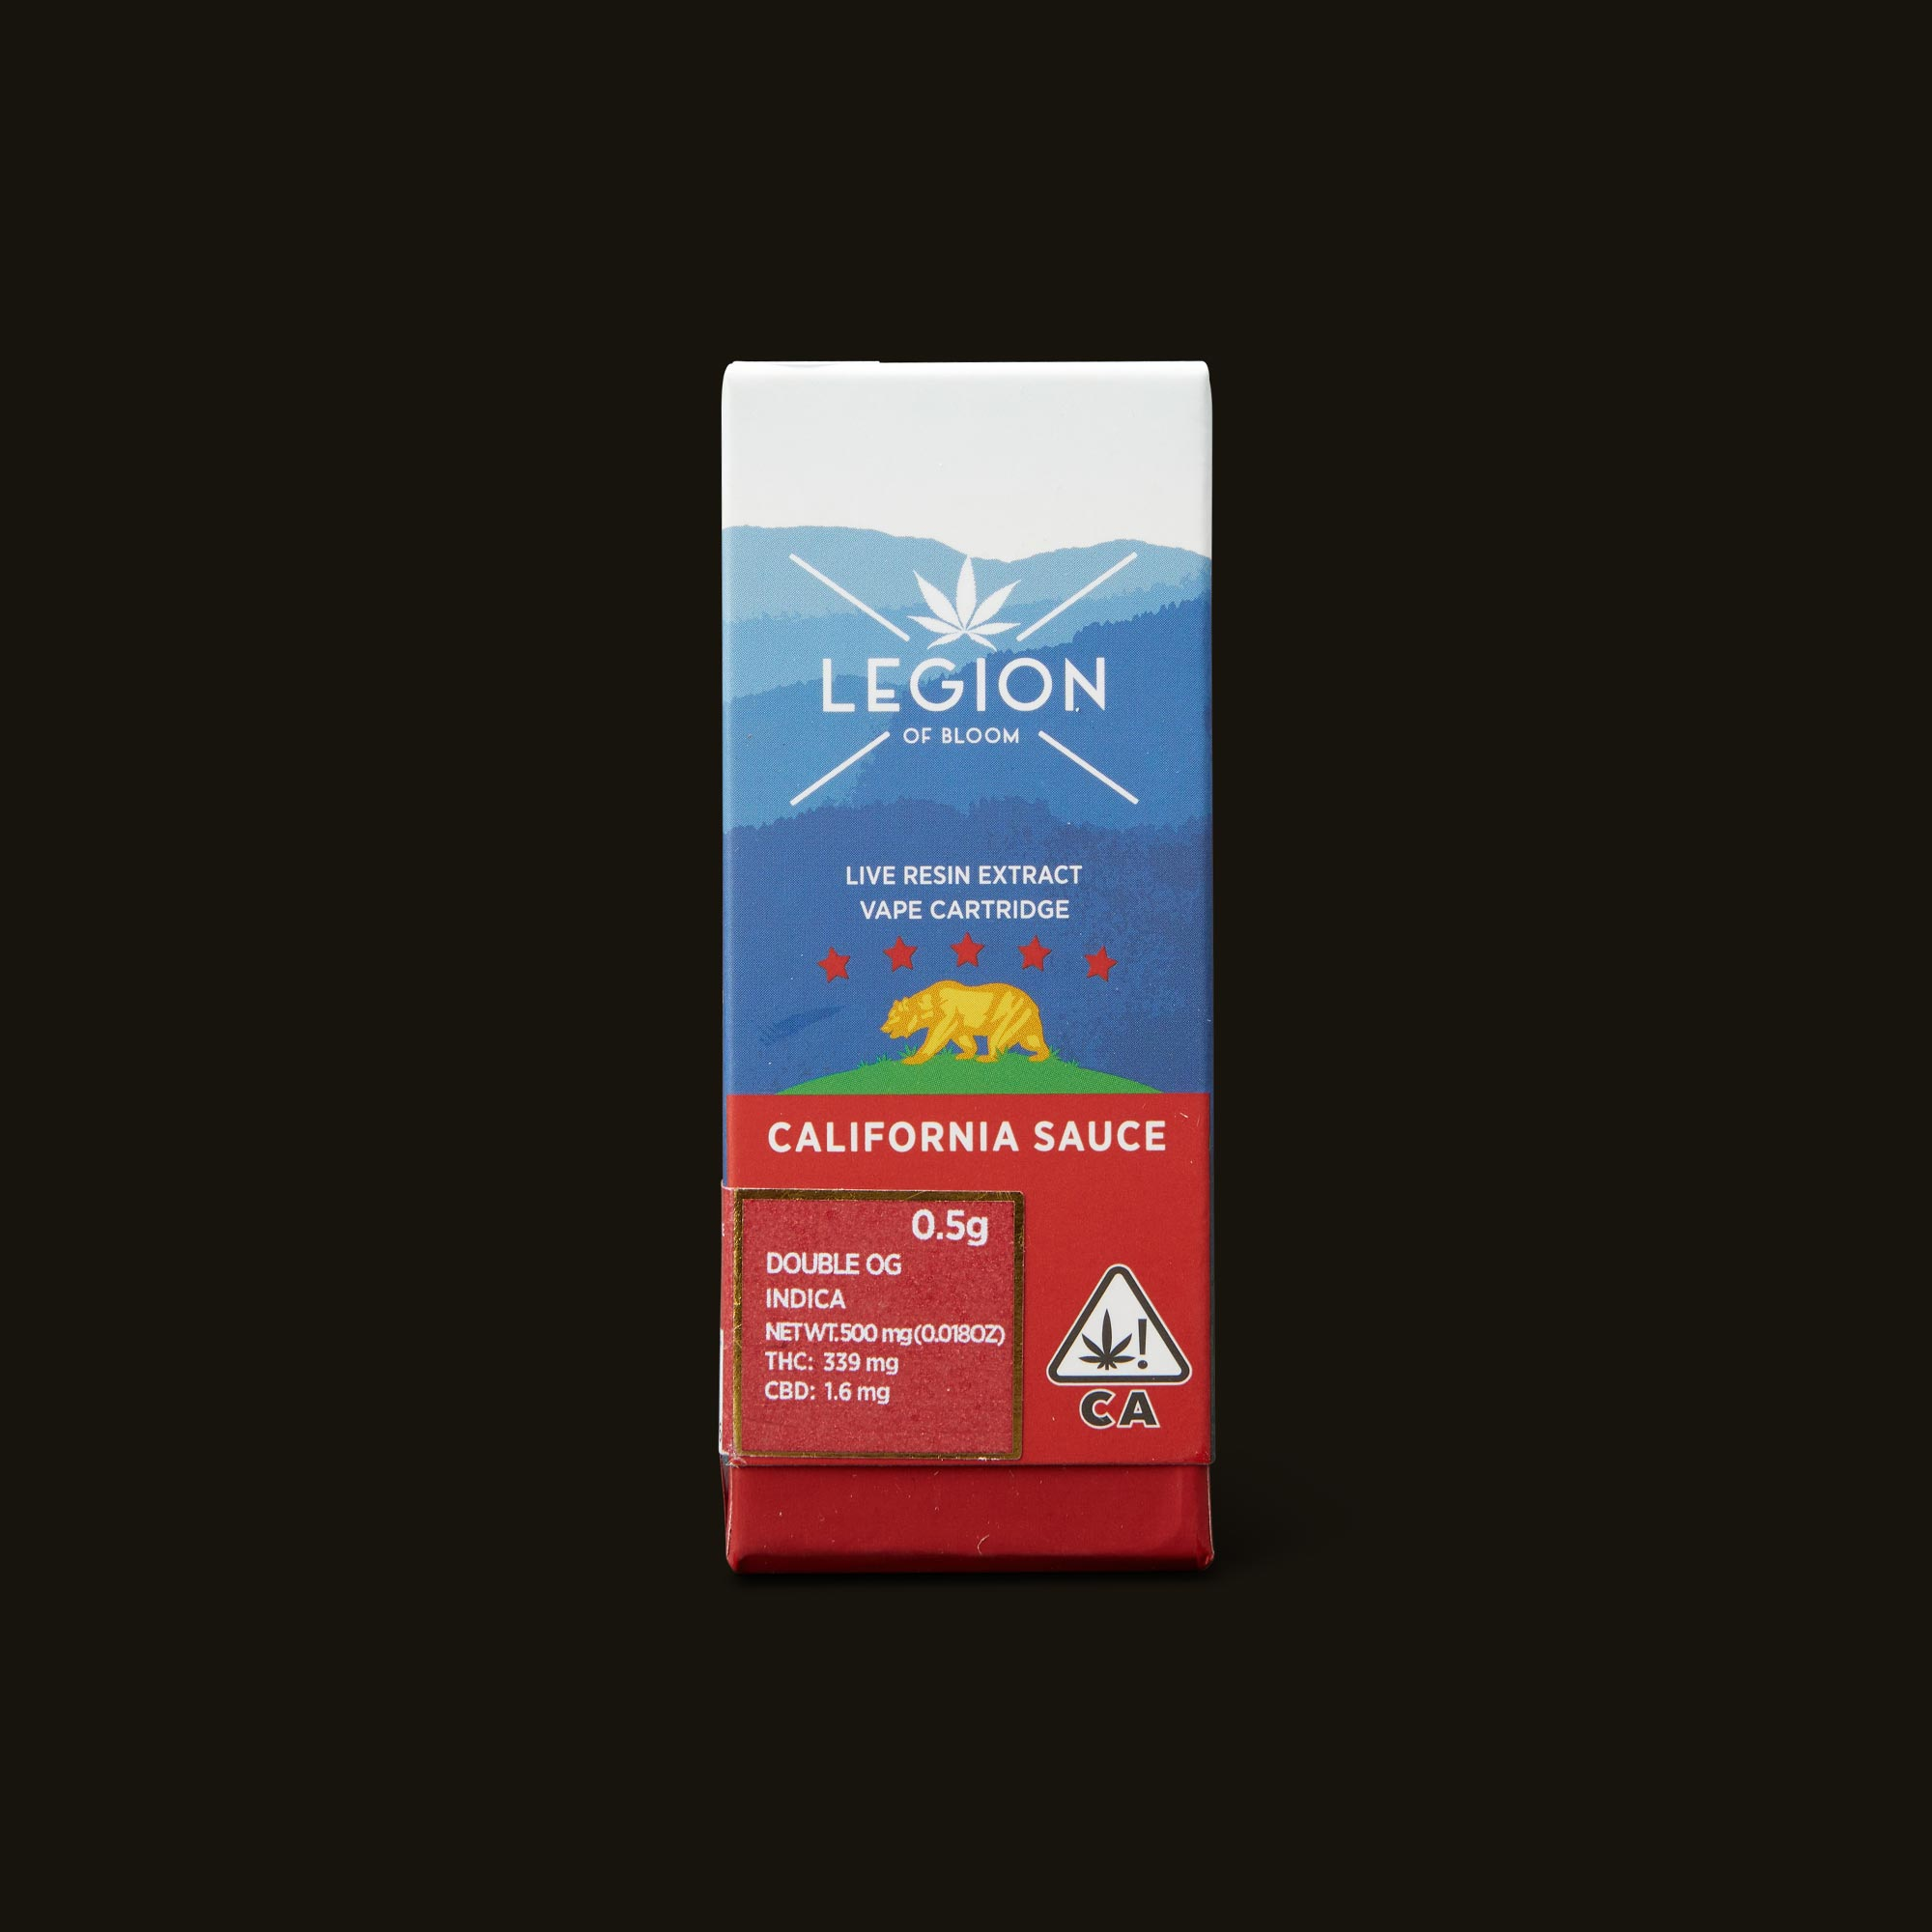 Legion of Bloom Double OG California Sauce Cartridge Front Packaging